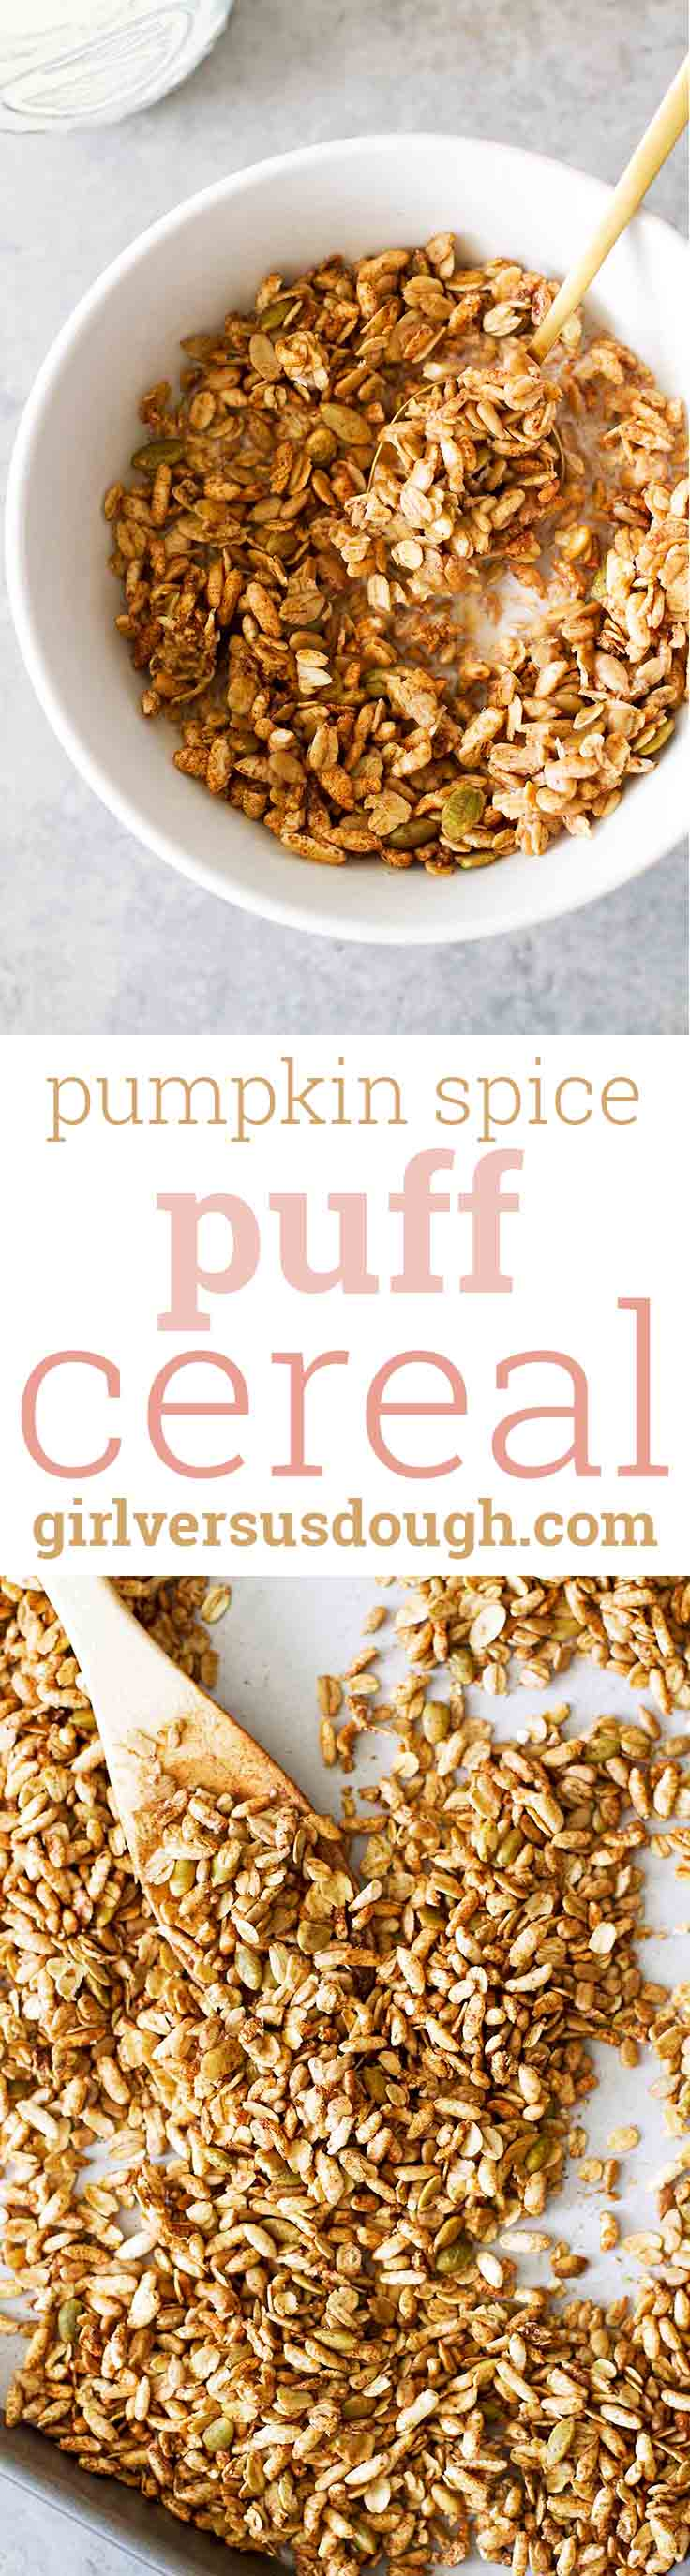 Pumpkin Spice Puff Cereal -- Puffed rice cereal, hearty oats, pumpkin seeds and pumpkin spice make this homemade cereal a delicious breakfast or snack for the fall. girlversusdough.com @girlversusdough